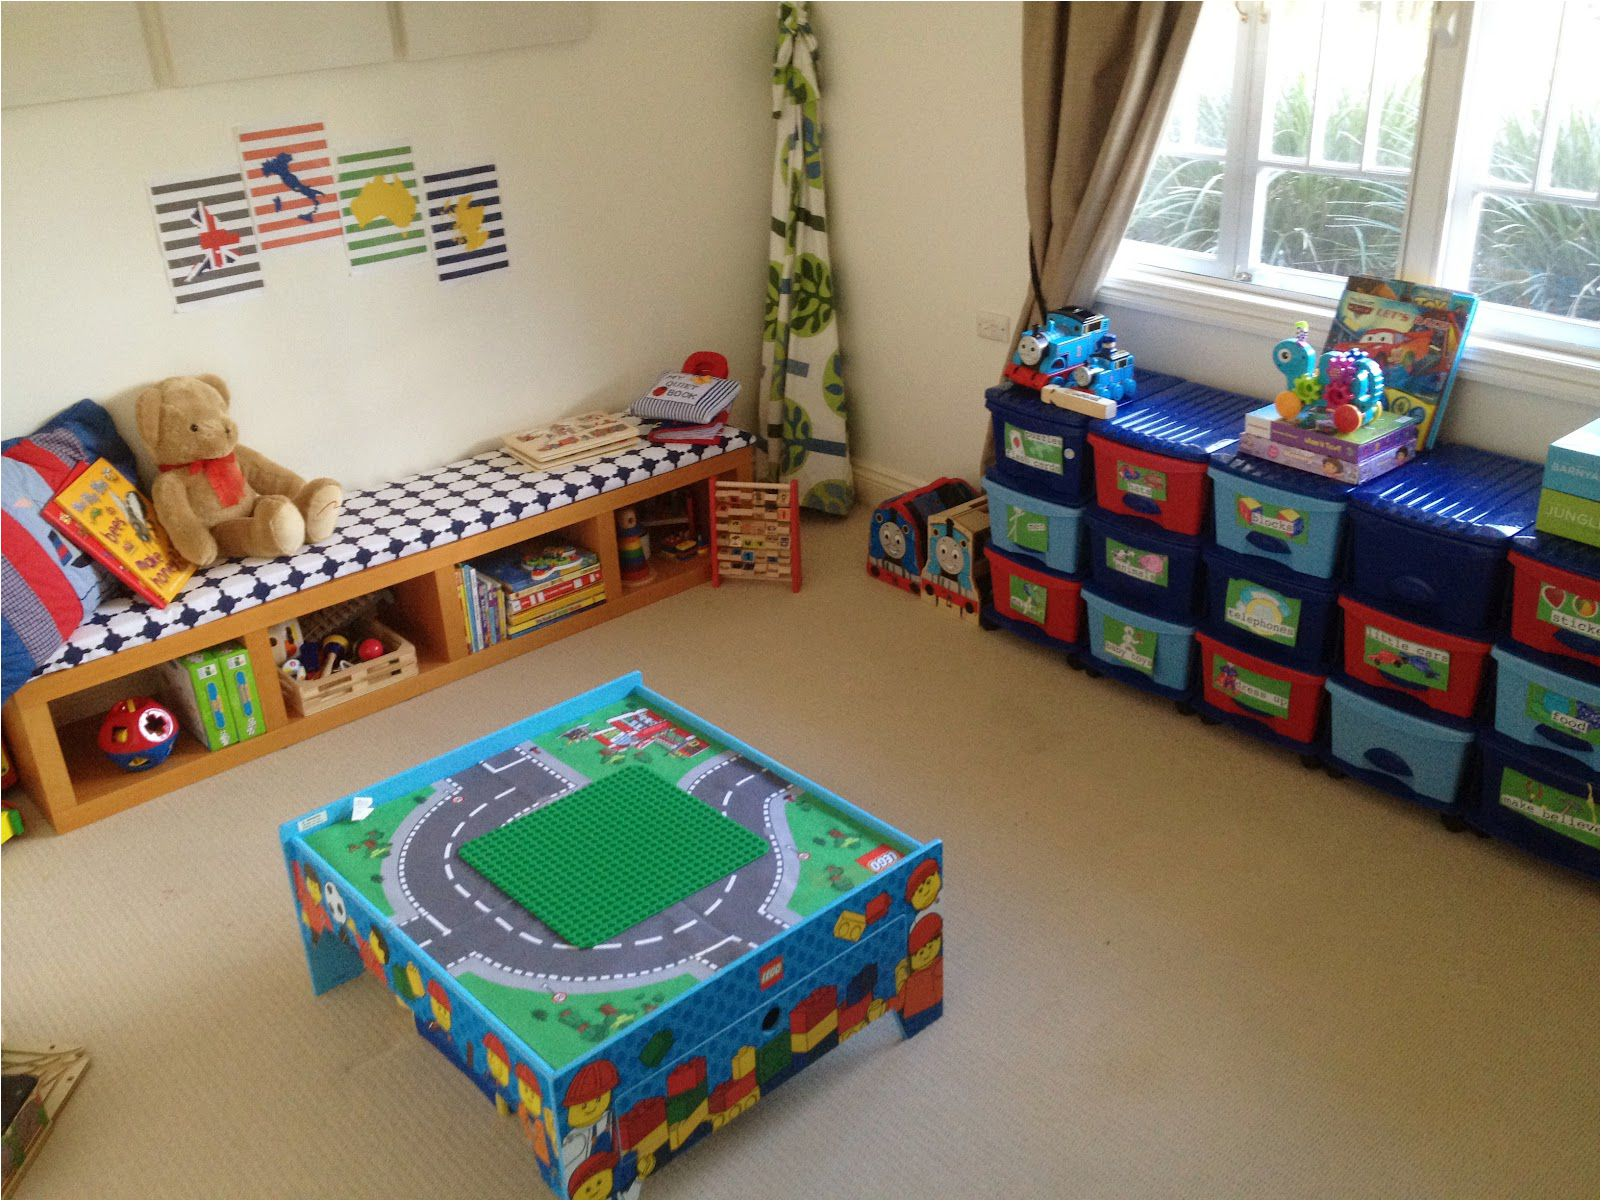 Fun Playroom Ideas 60 Fun Kids Playroom Ideas To Inspire You